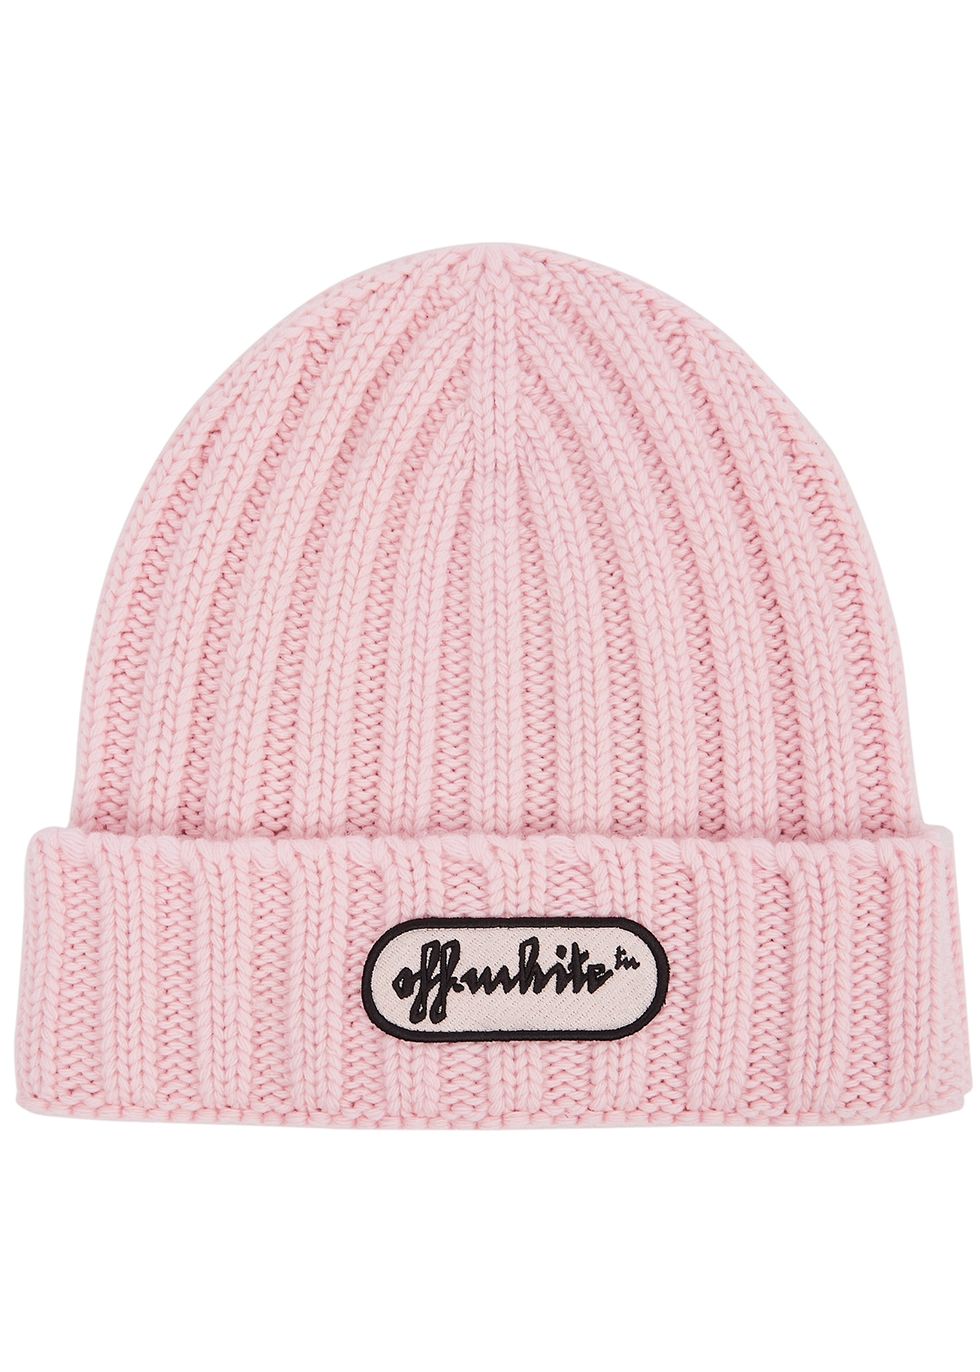 Light pink ribbed wool beanie